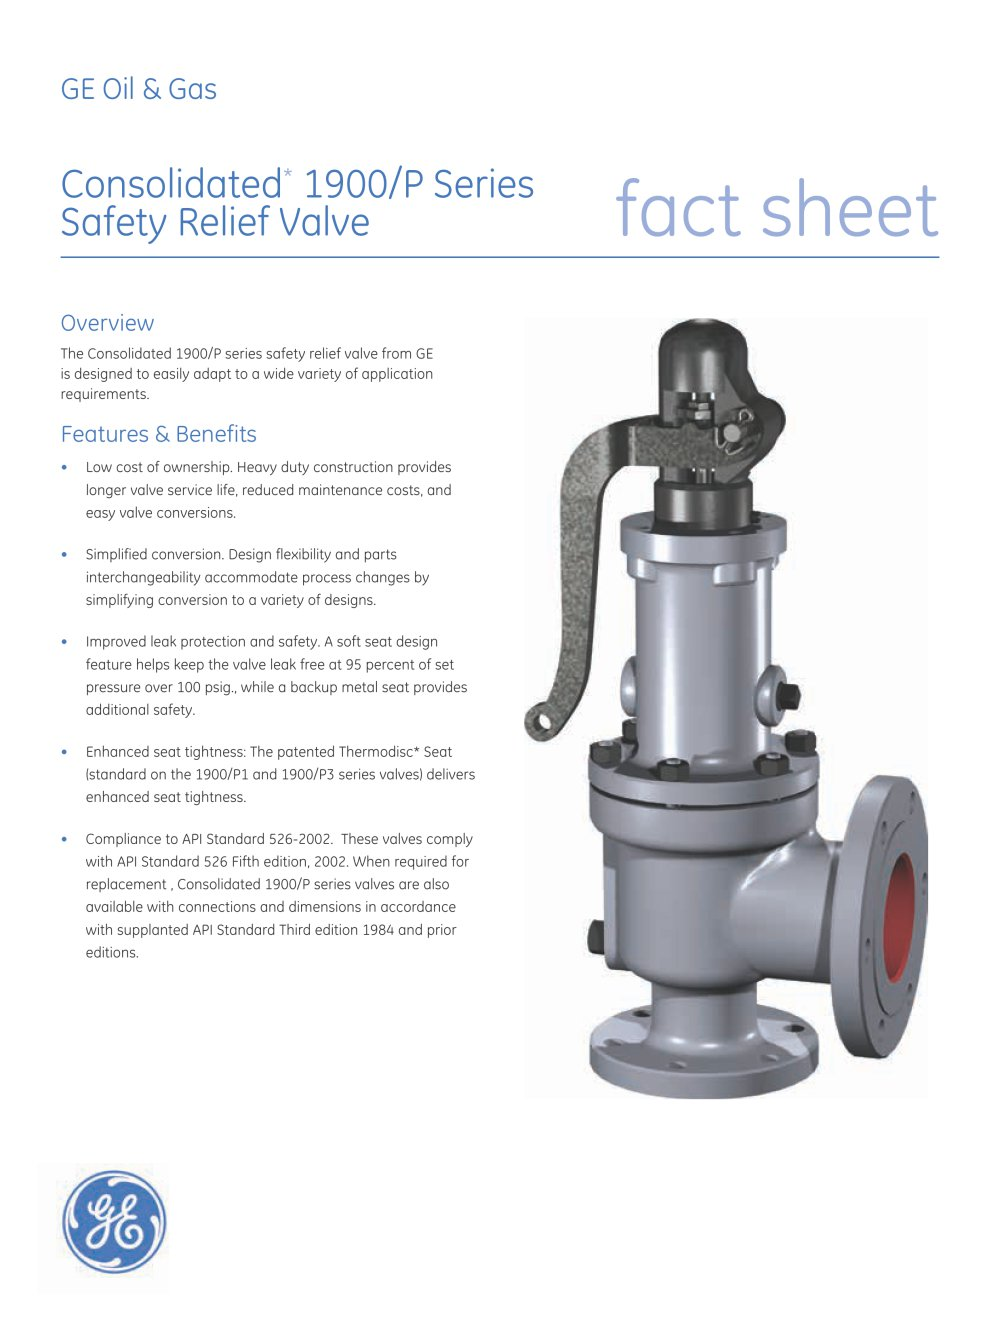 Consolidated Type 1900 P Safety Relief Valve 1 2 Pages